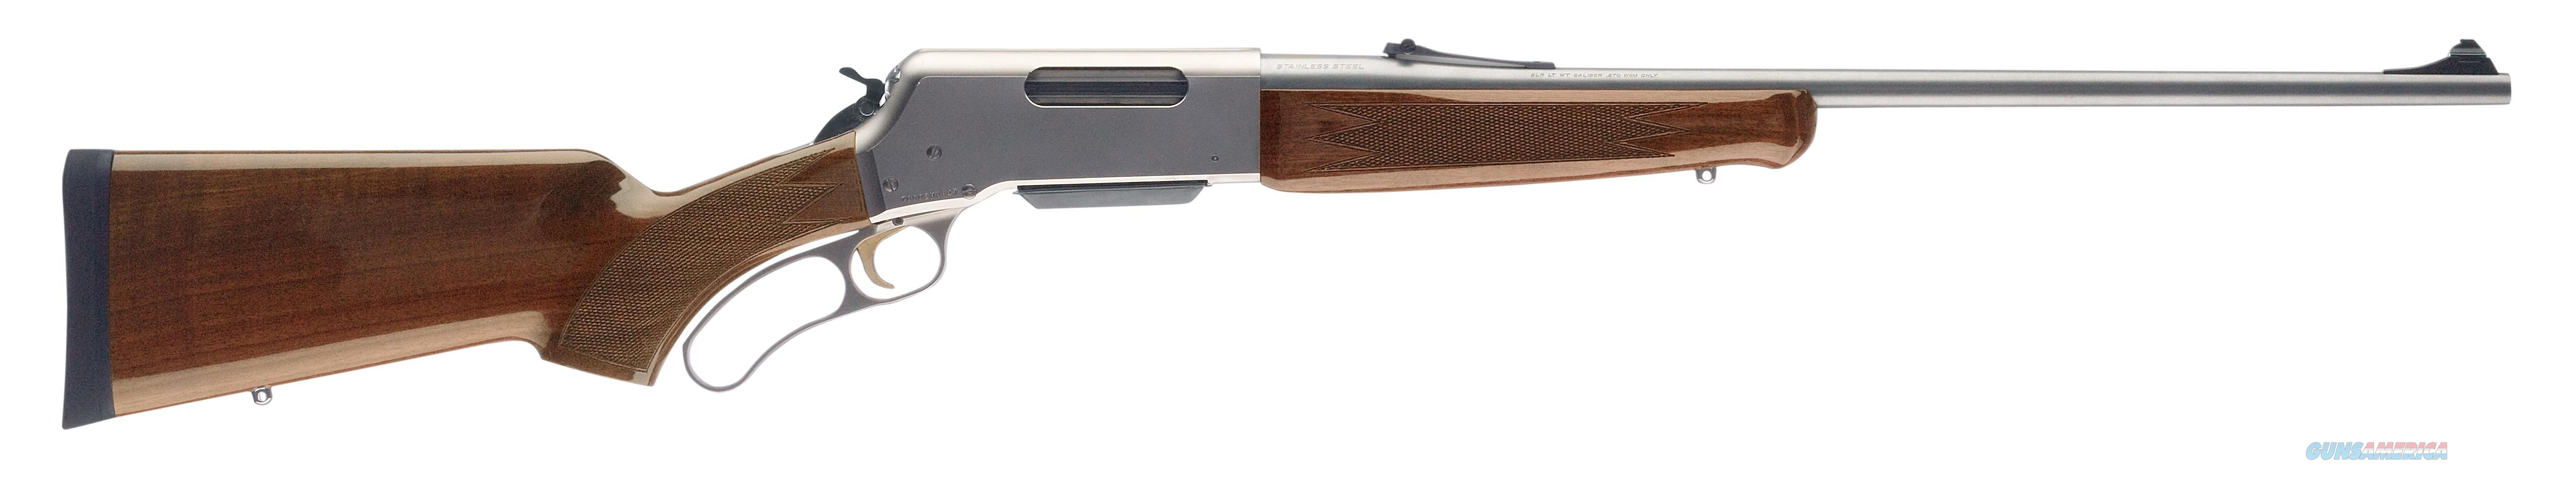 BROWNING BLR LTWT 270WSM WOOD SS PISTOL GRIP 034018148  Guns > Rifles > Browning Rifles > Lever Action